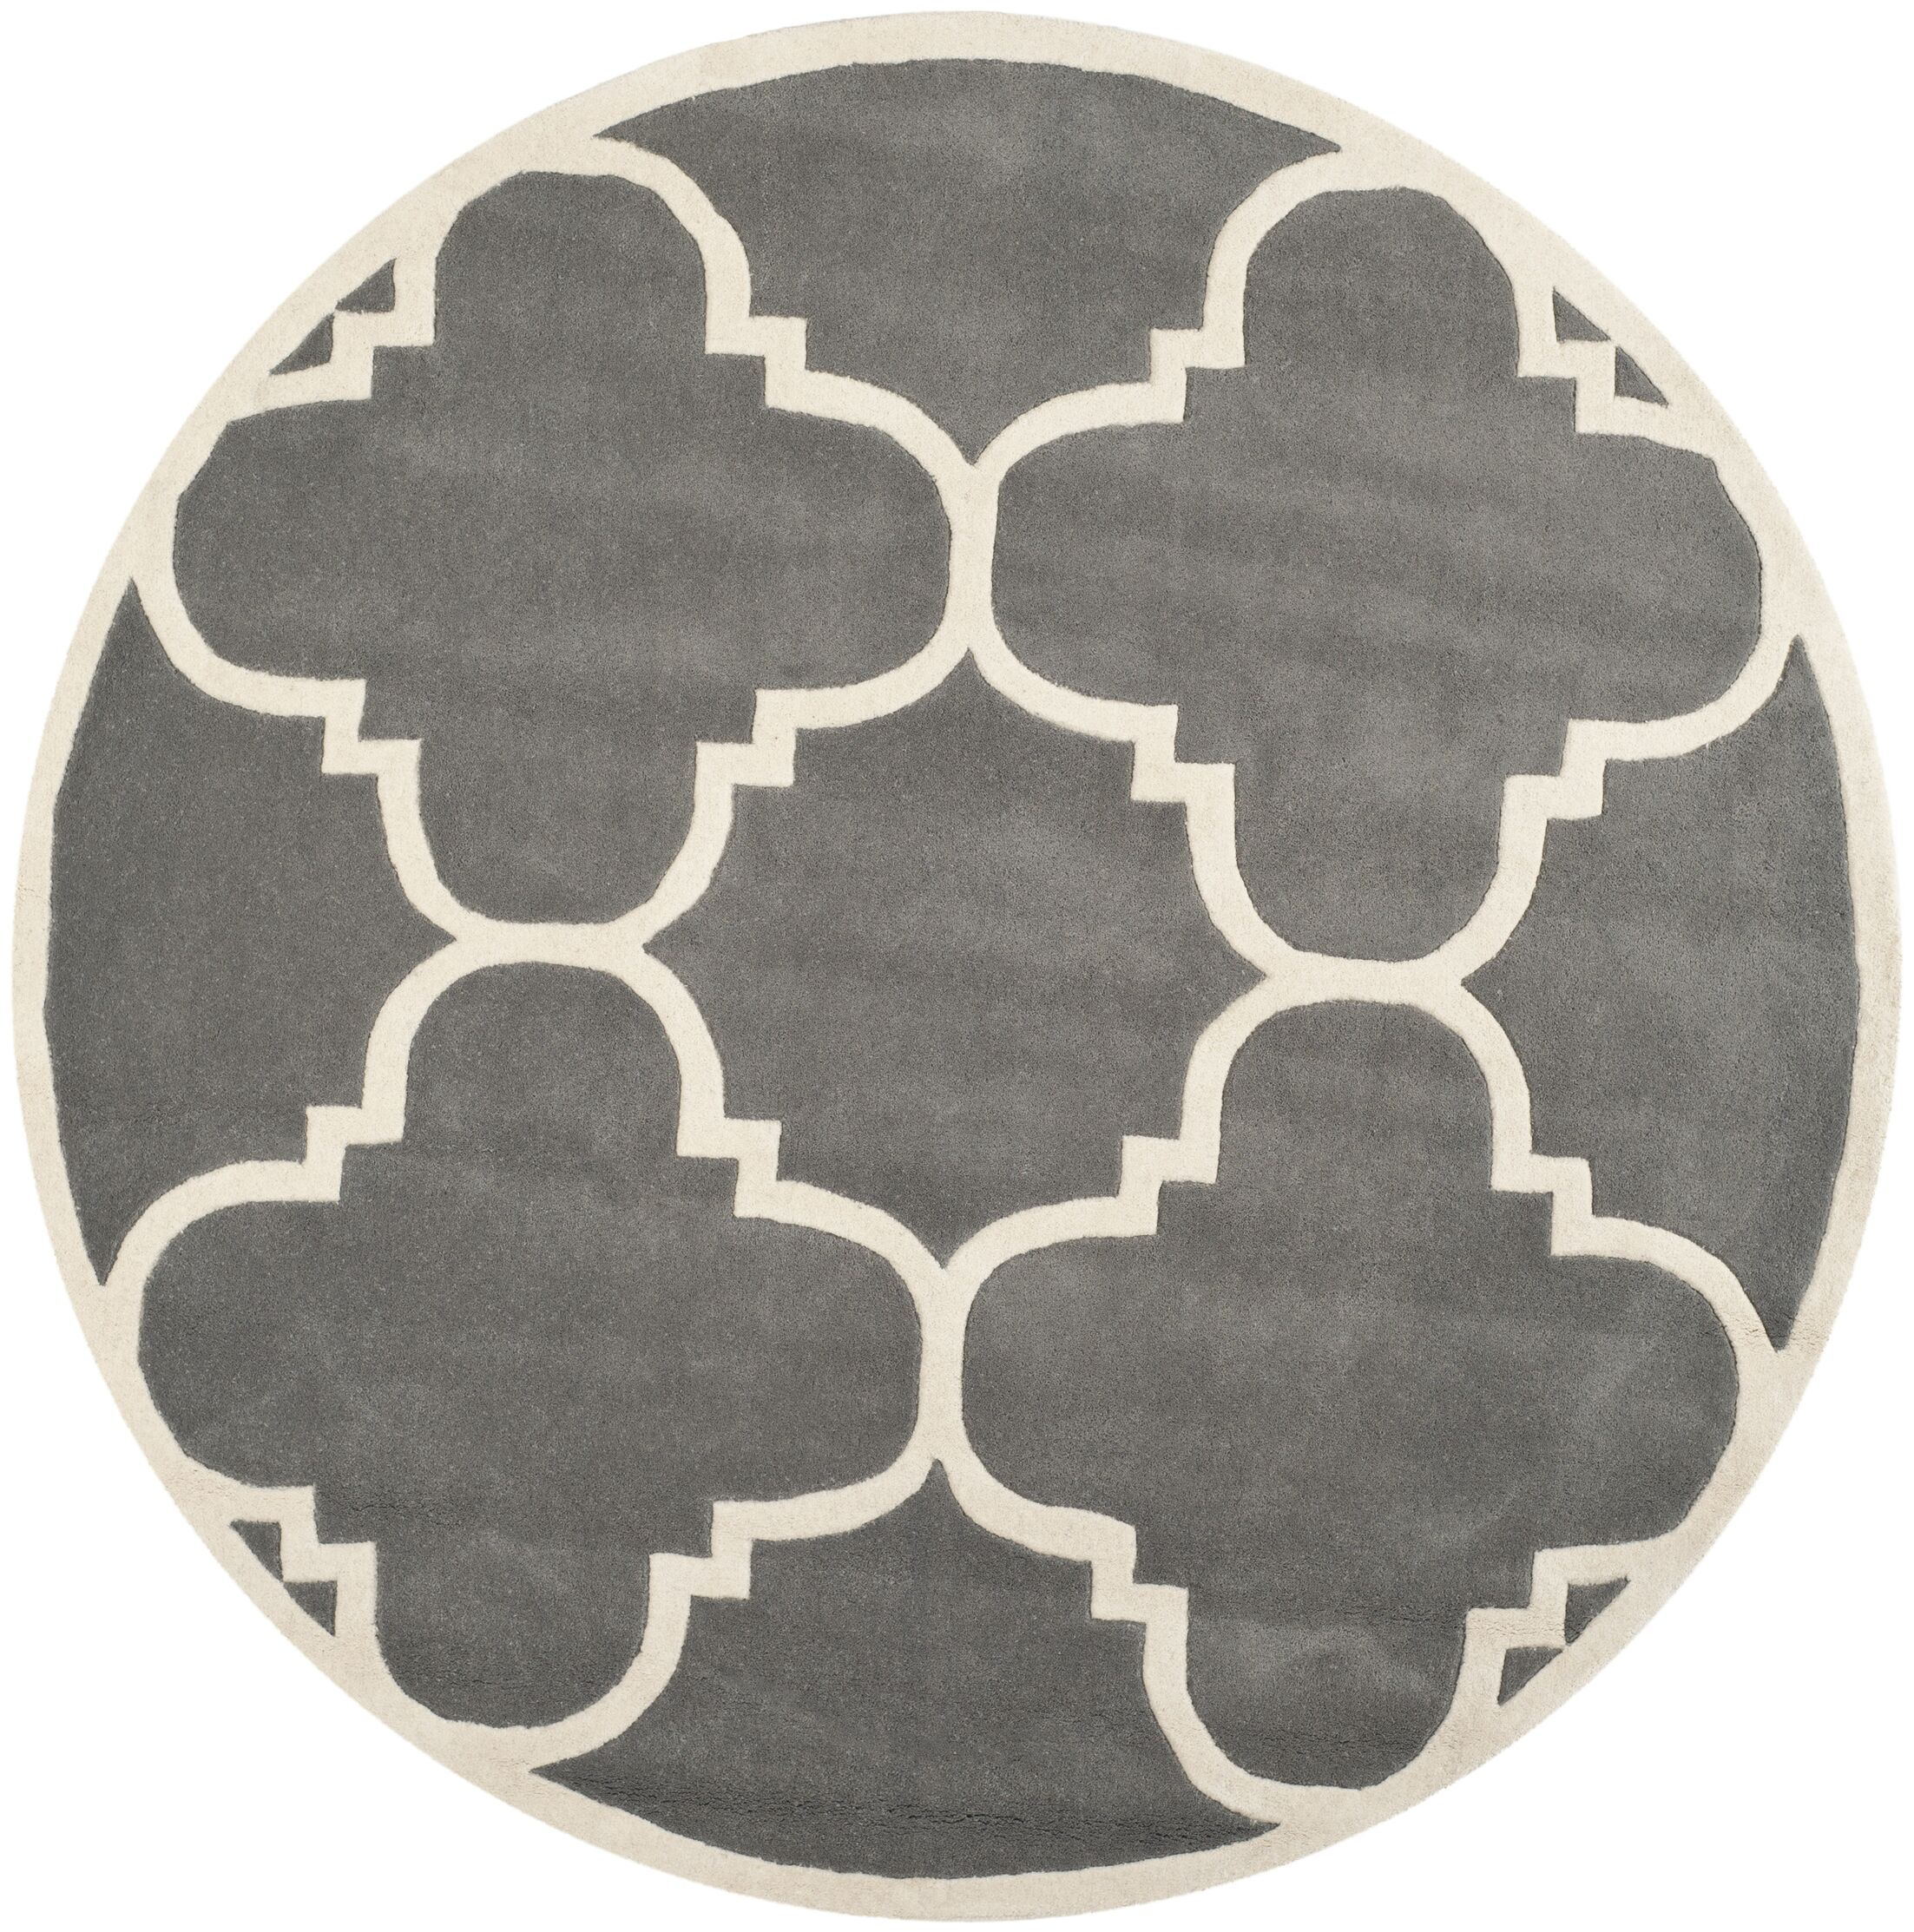 Wilkin Hand-Tufted Wool Dark Gray Area Rug Rug Size: Round 9'